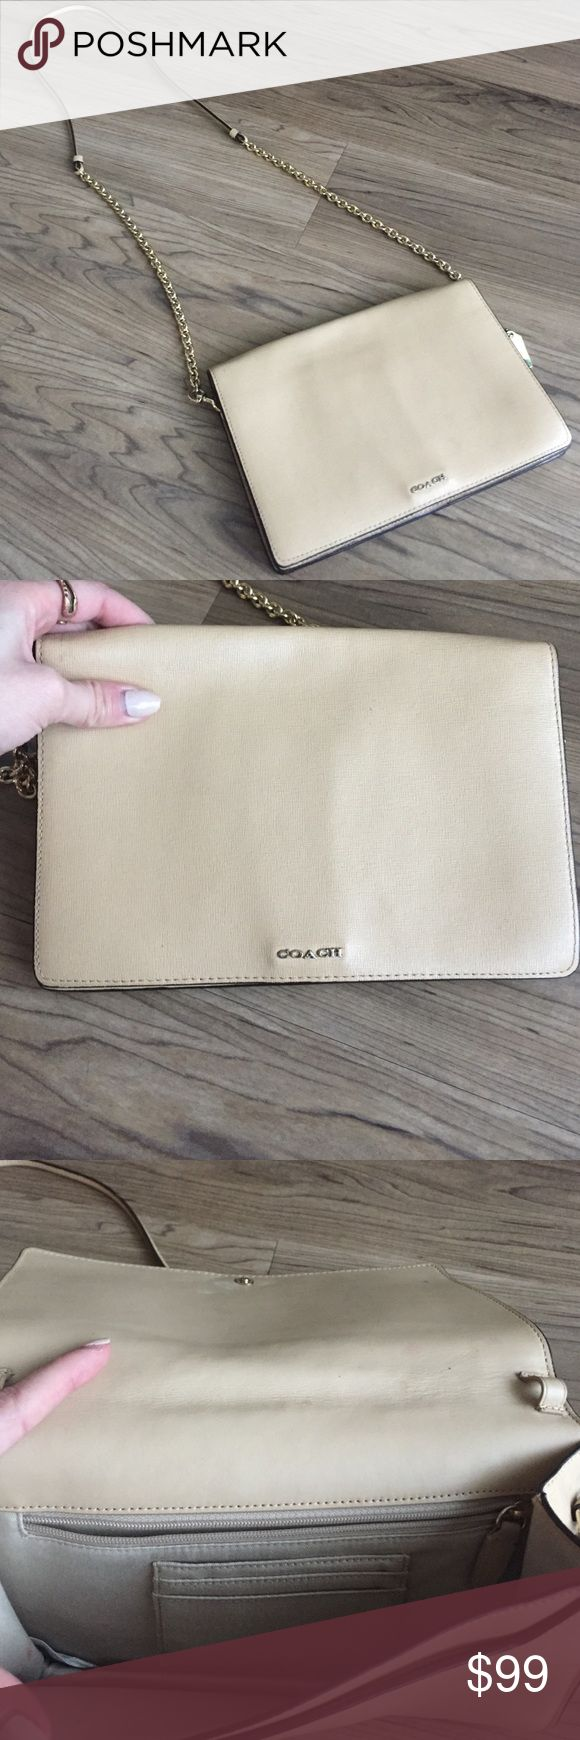 Nude Coach Clutch! This is a nude colored Coach clutch with removable strap. Very gently used. Two inner pockets. Coach Bags Crossbody Bags